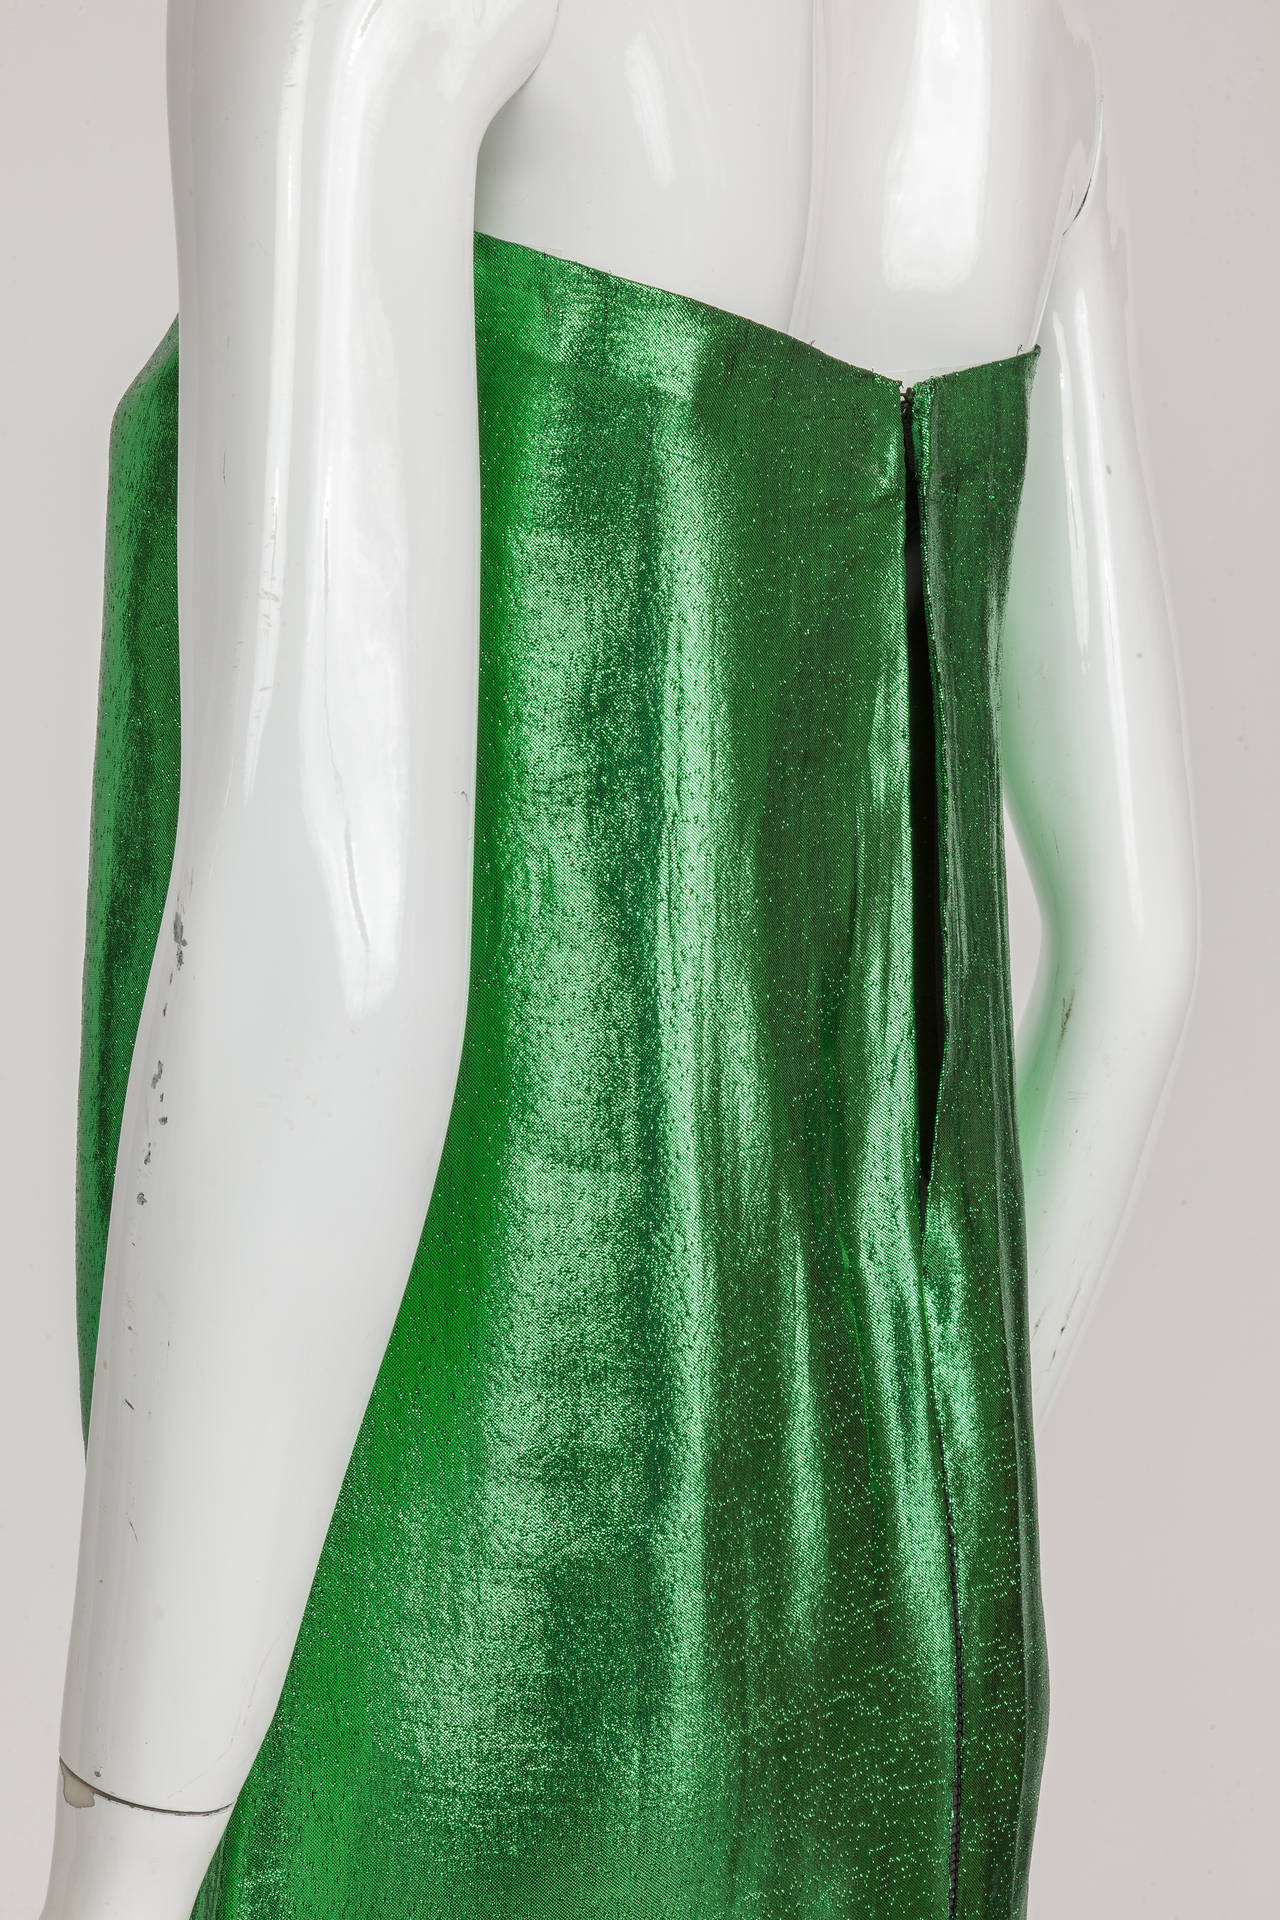 1970s Pierre Cardin Haute Couture Green Lame Tube Dress w/Keyhole Slit at Back 2